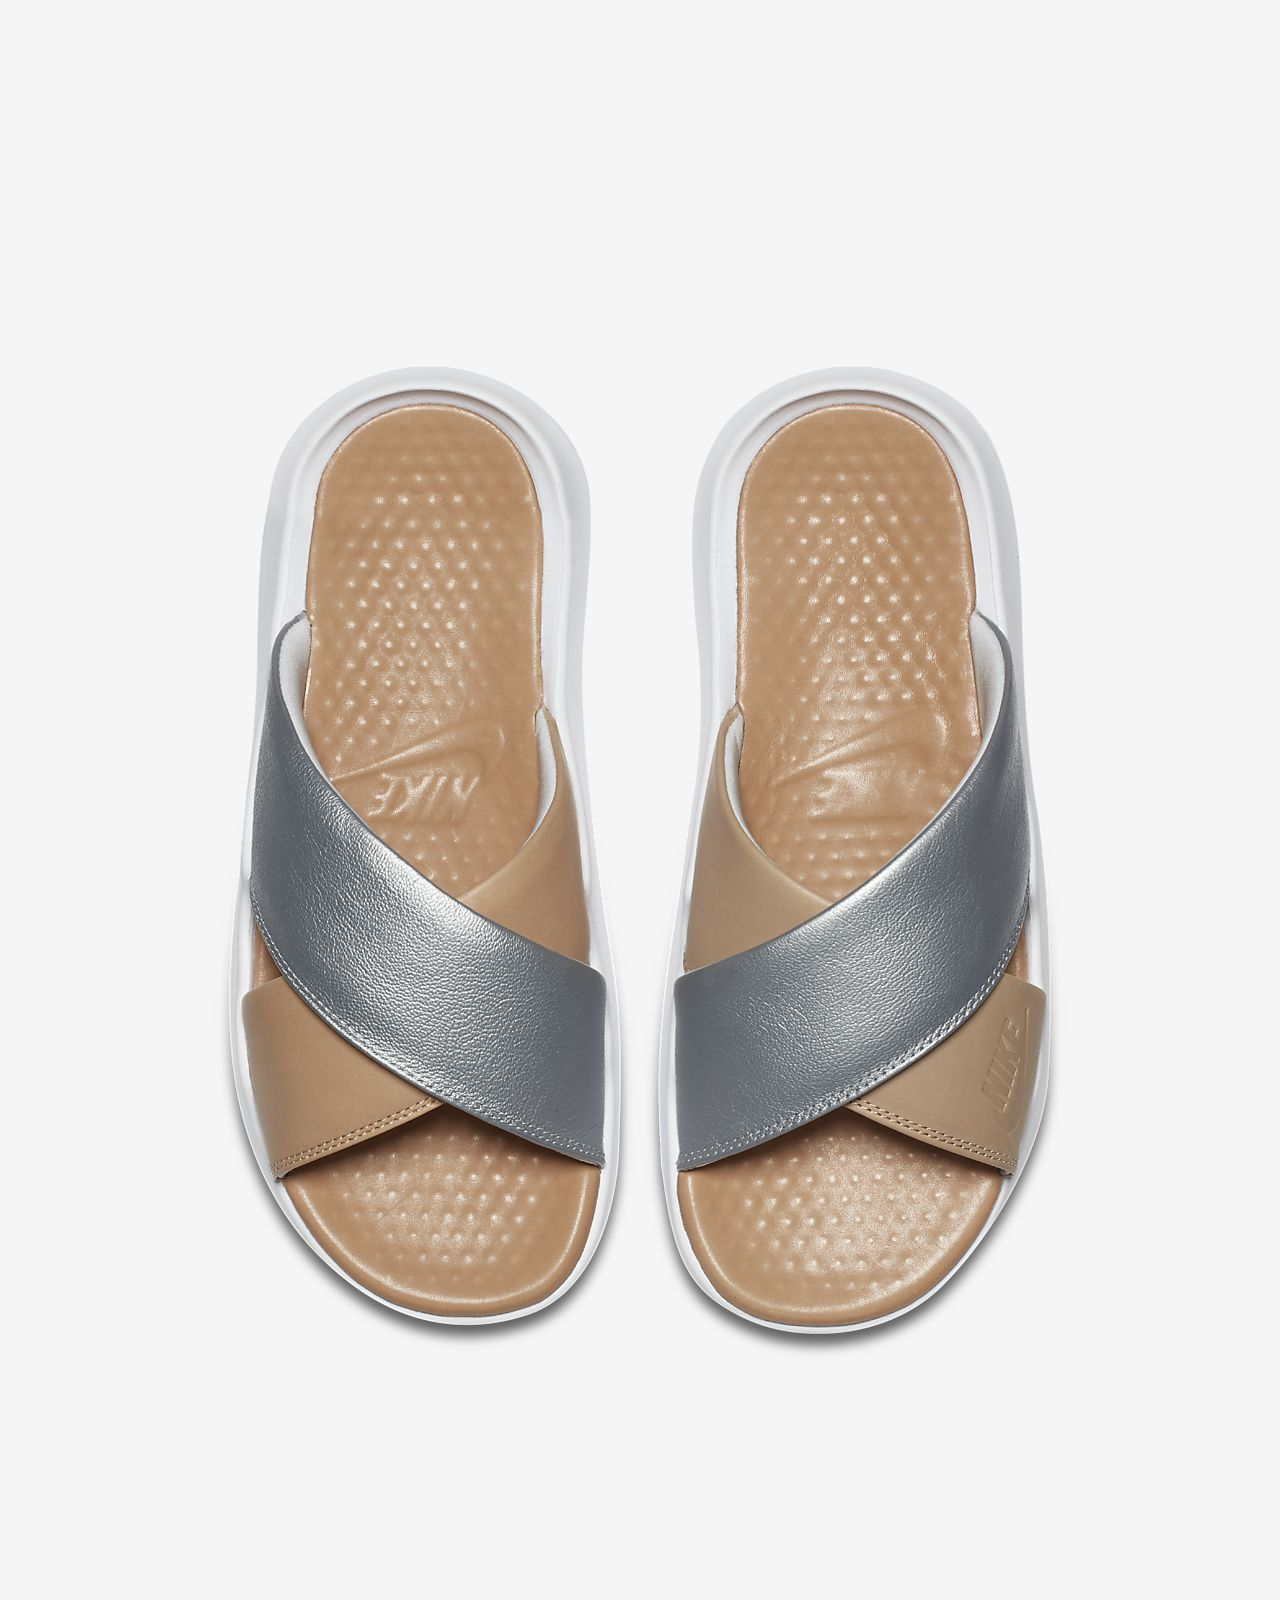 2cb97a467994 Nike Benassi Future Cross SE Premium Women s Slide. Nike.com GB